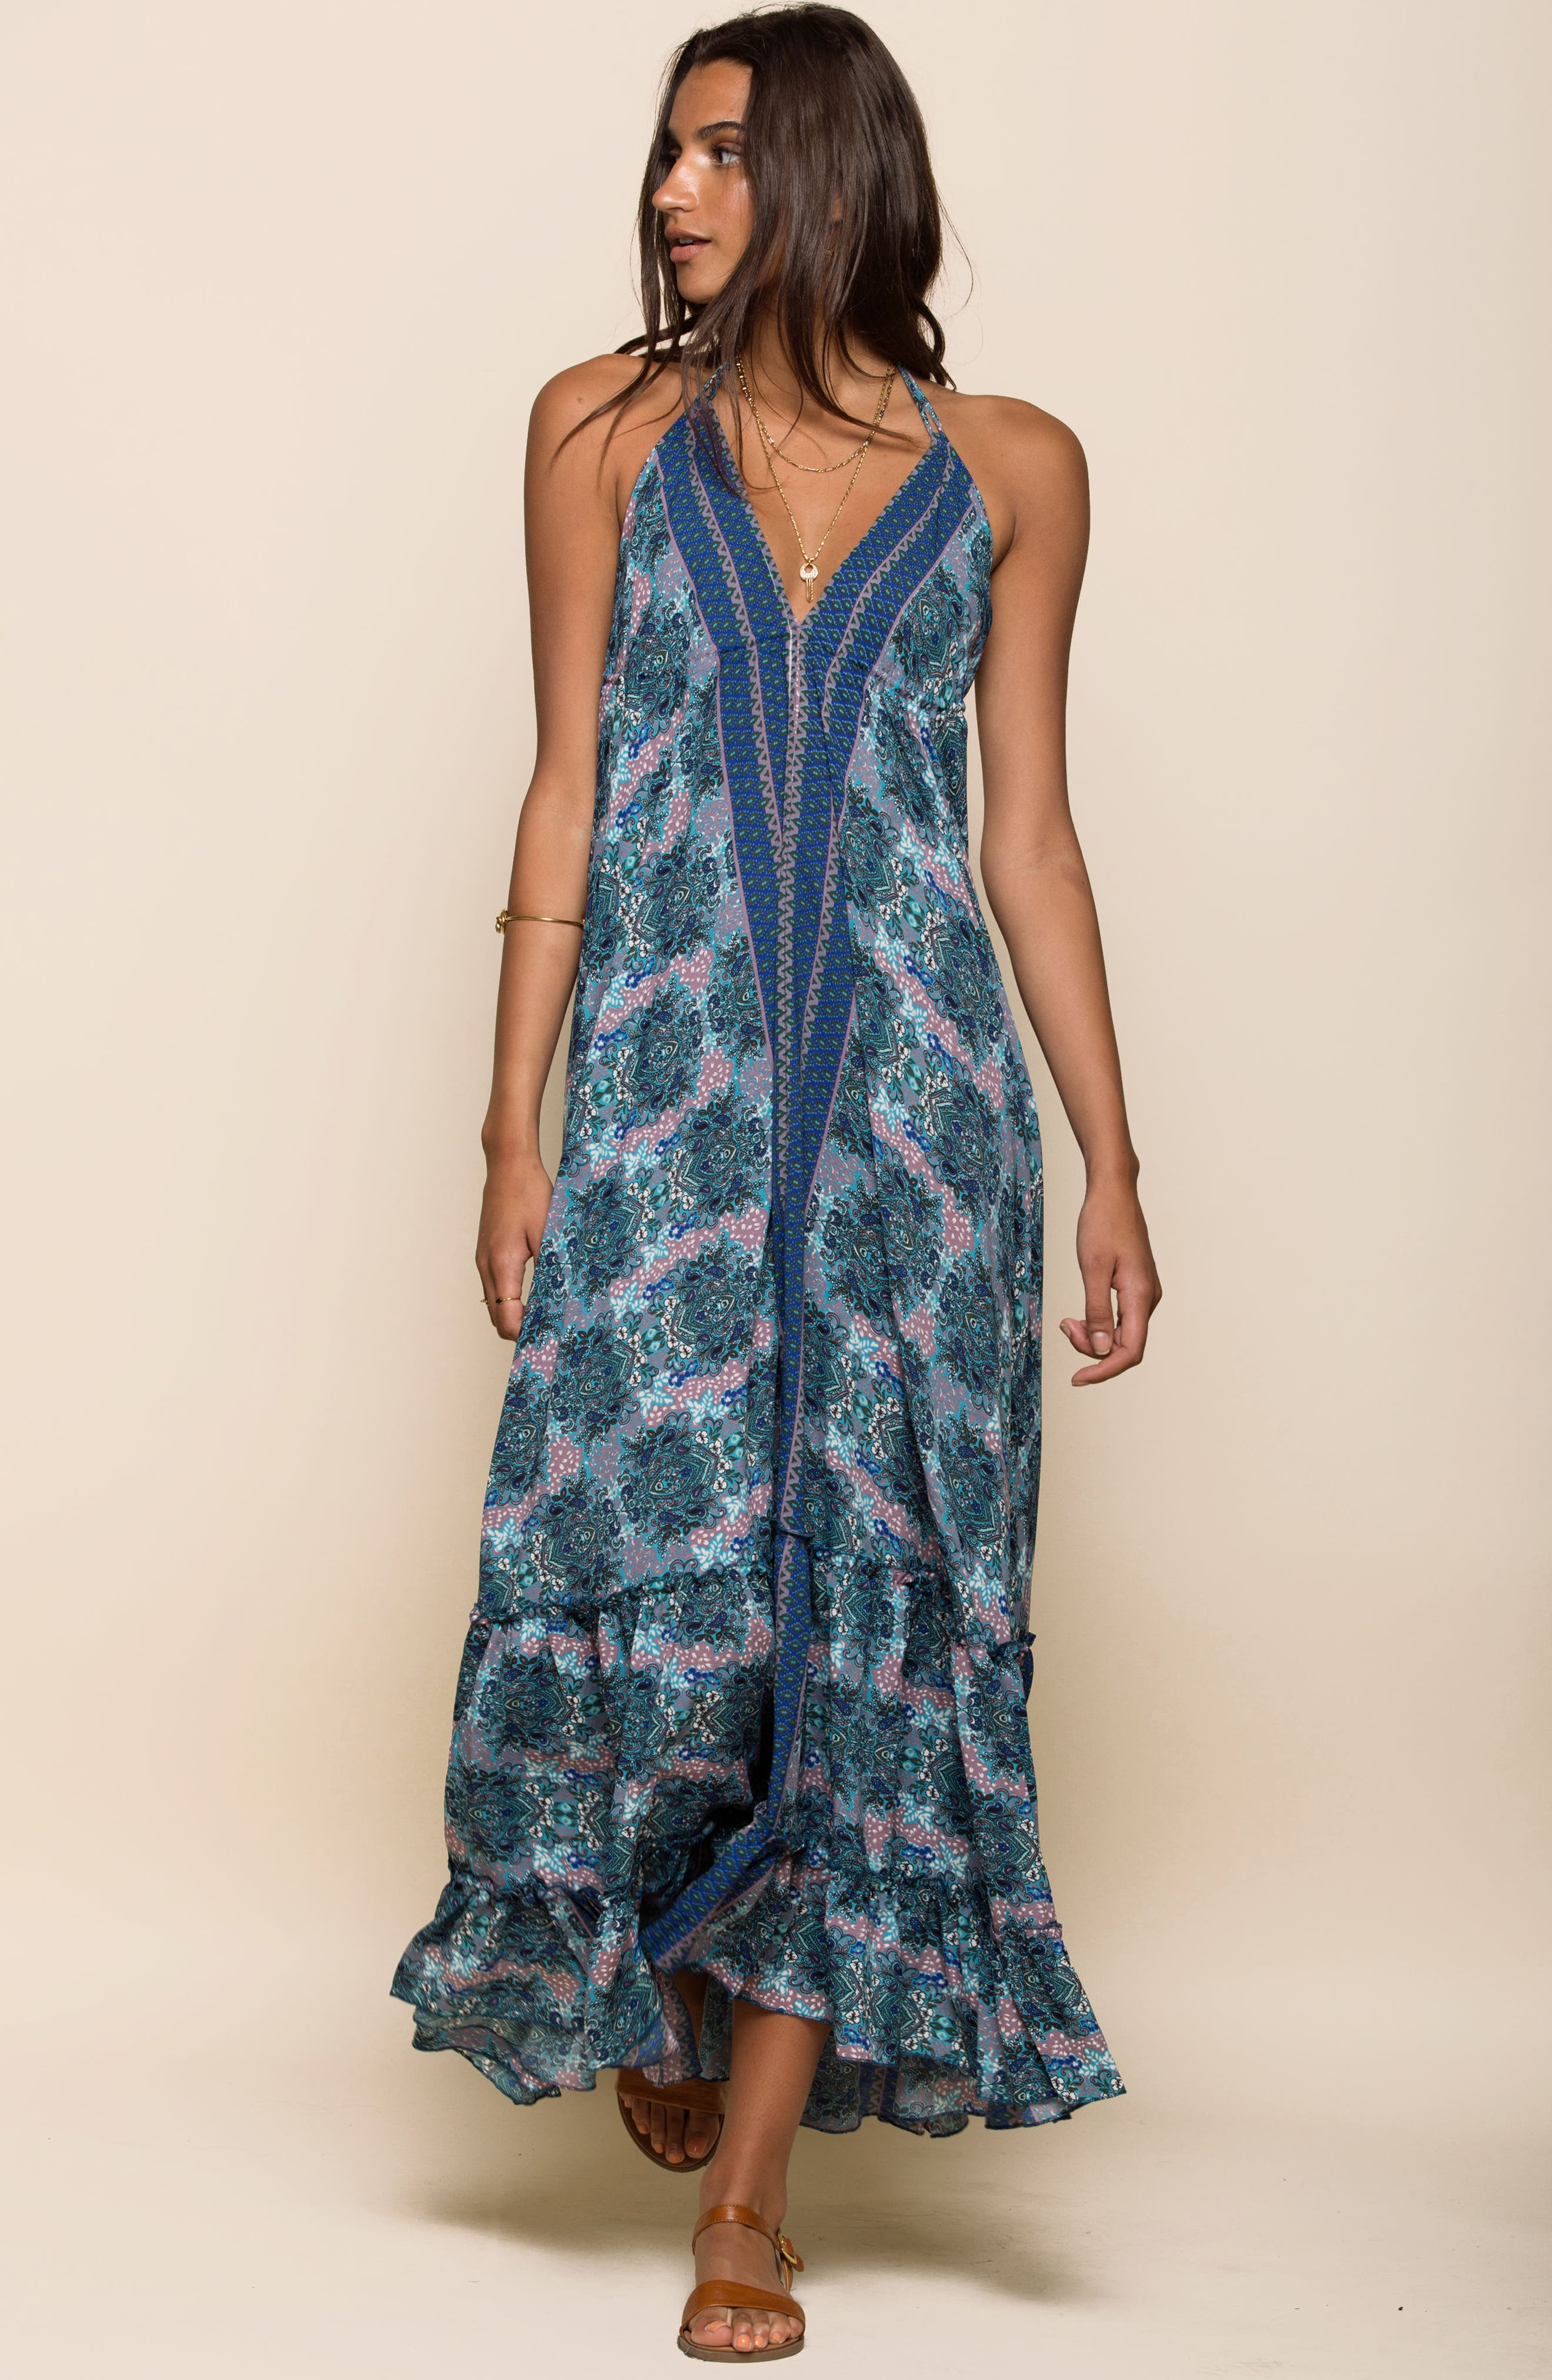 Poetic Dreams Halter Maxi Dress,                             Alternate thumbnail 2, color,                             Blue